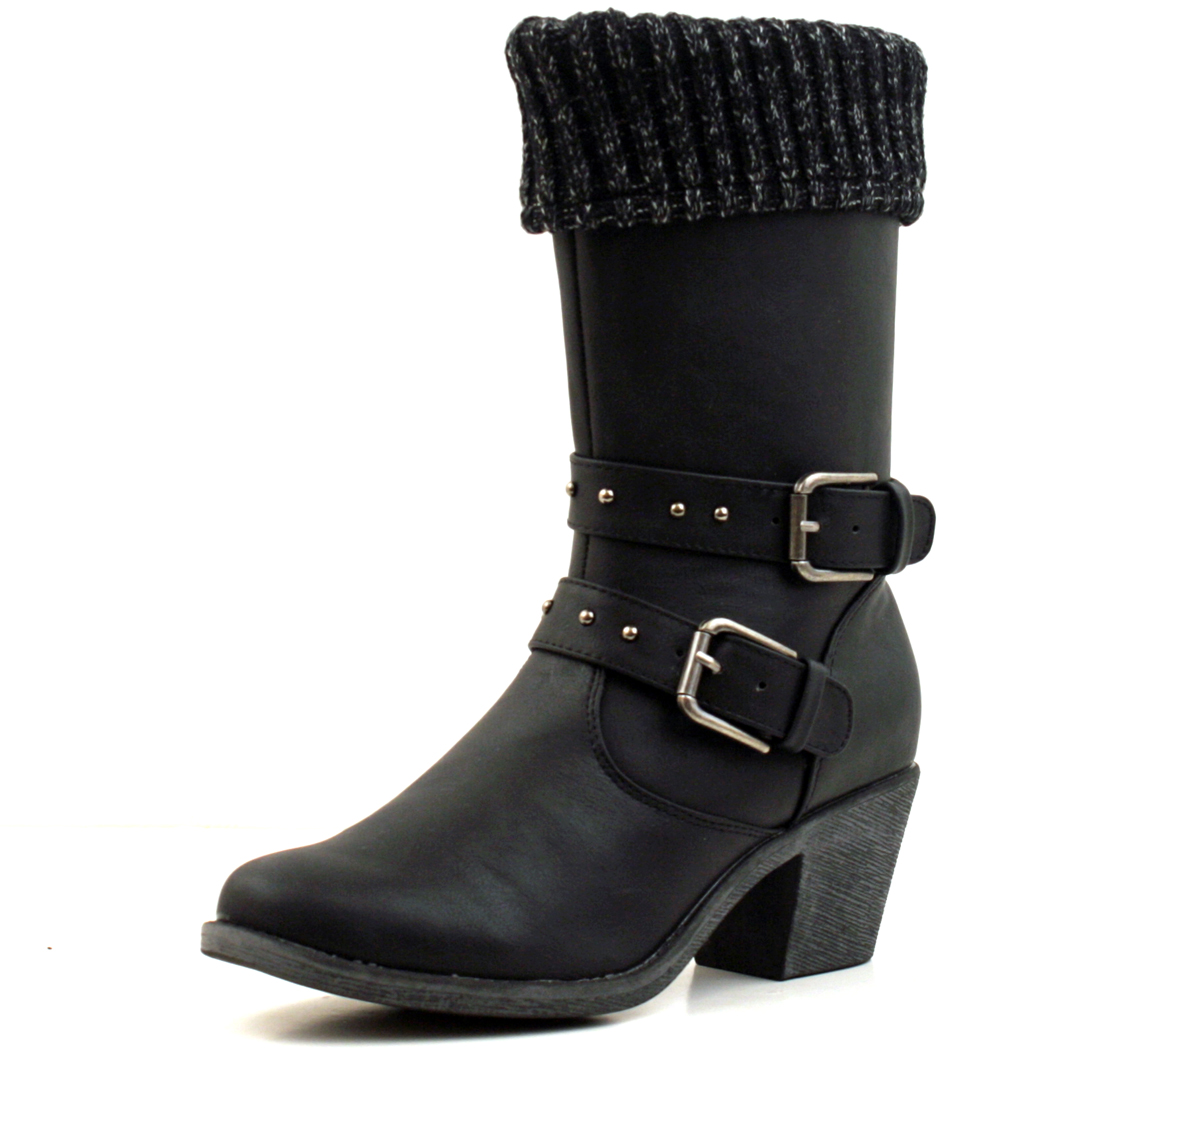 Luckers Womens Sweater Cuff Mid Calf Boots Color Black Size 8 Bm Us